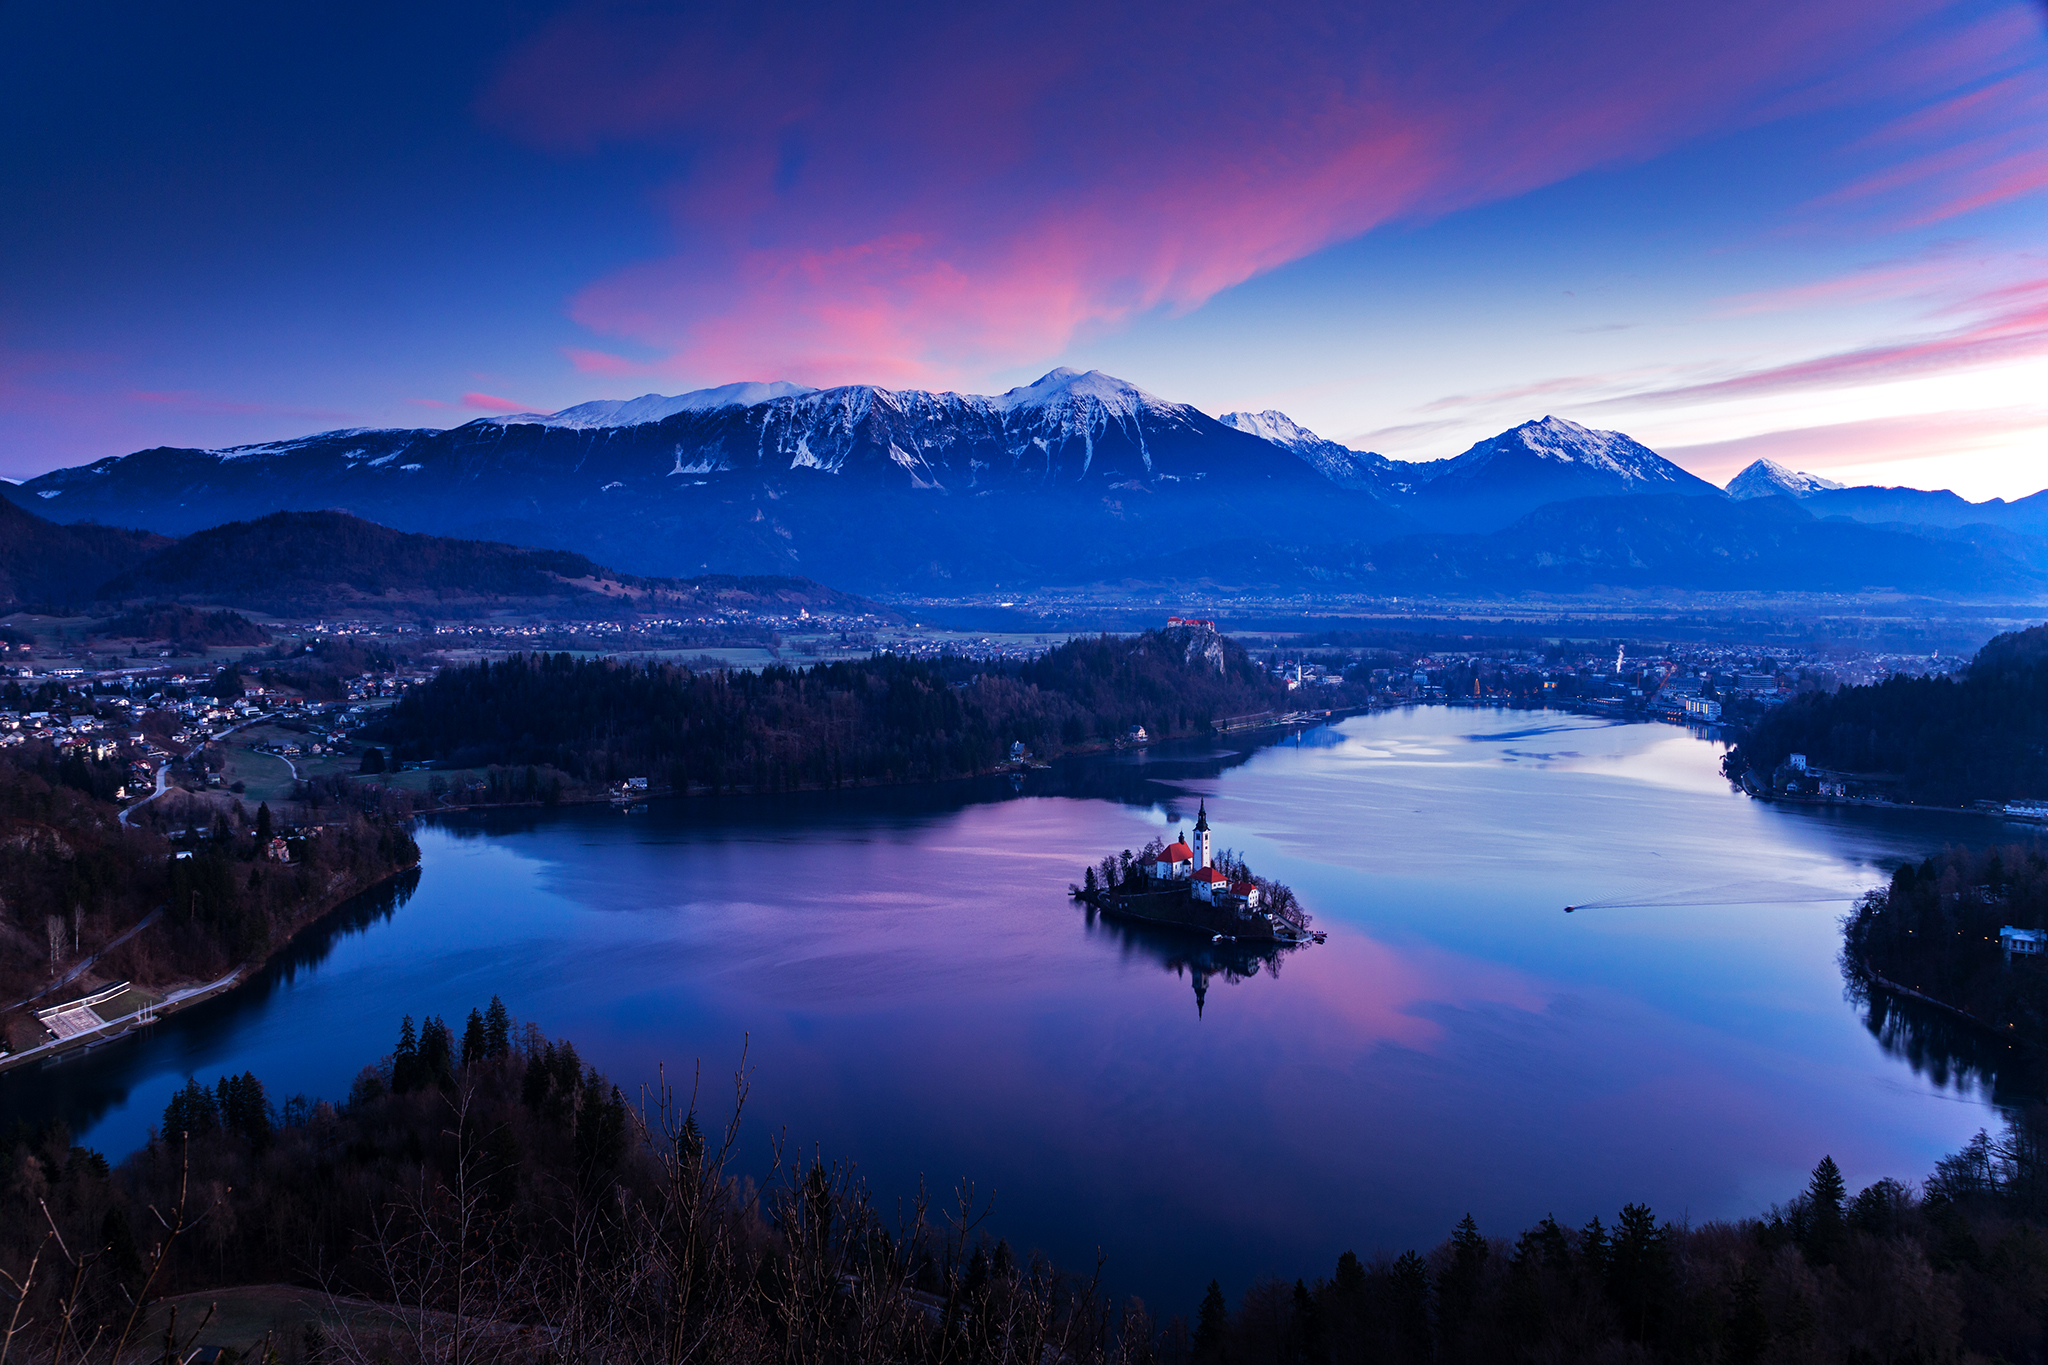 Photographing Lake Bled from Mala Osojnica